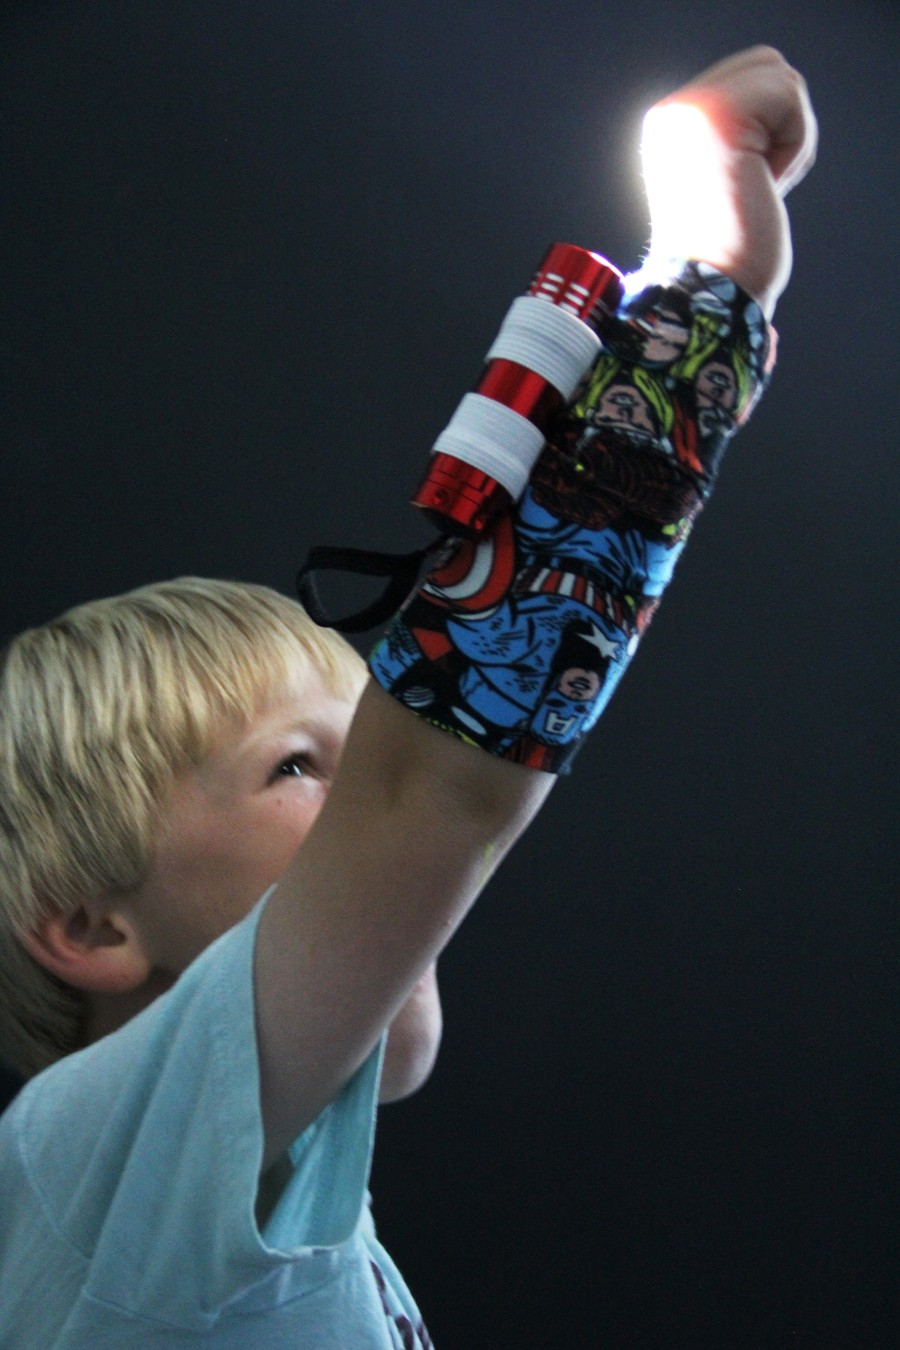 perfect for camping, fun summer nights, the fourth of july, Halloween, or just superhero fun!!! Flashlight armband DIY